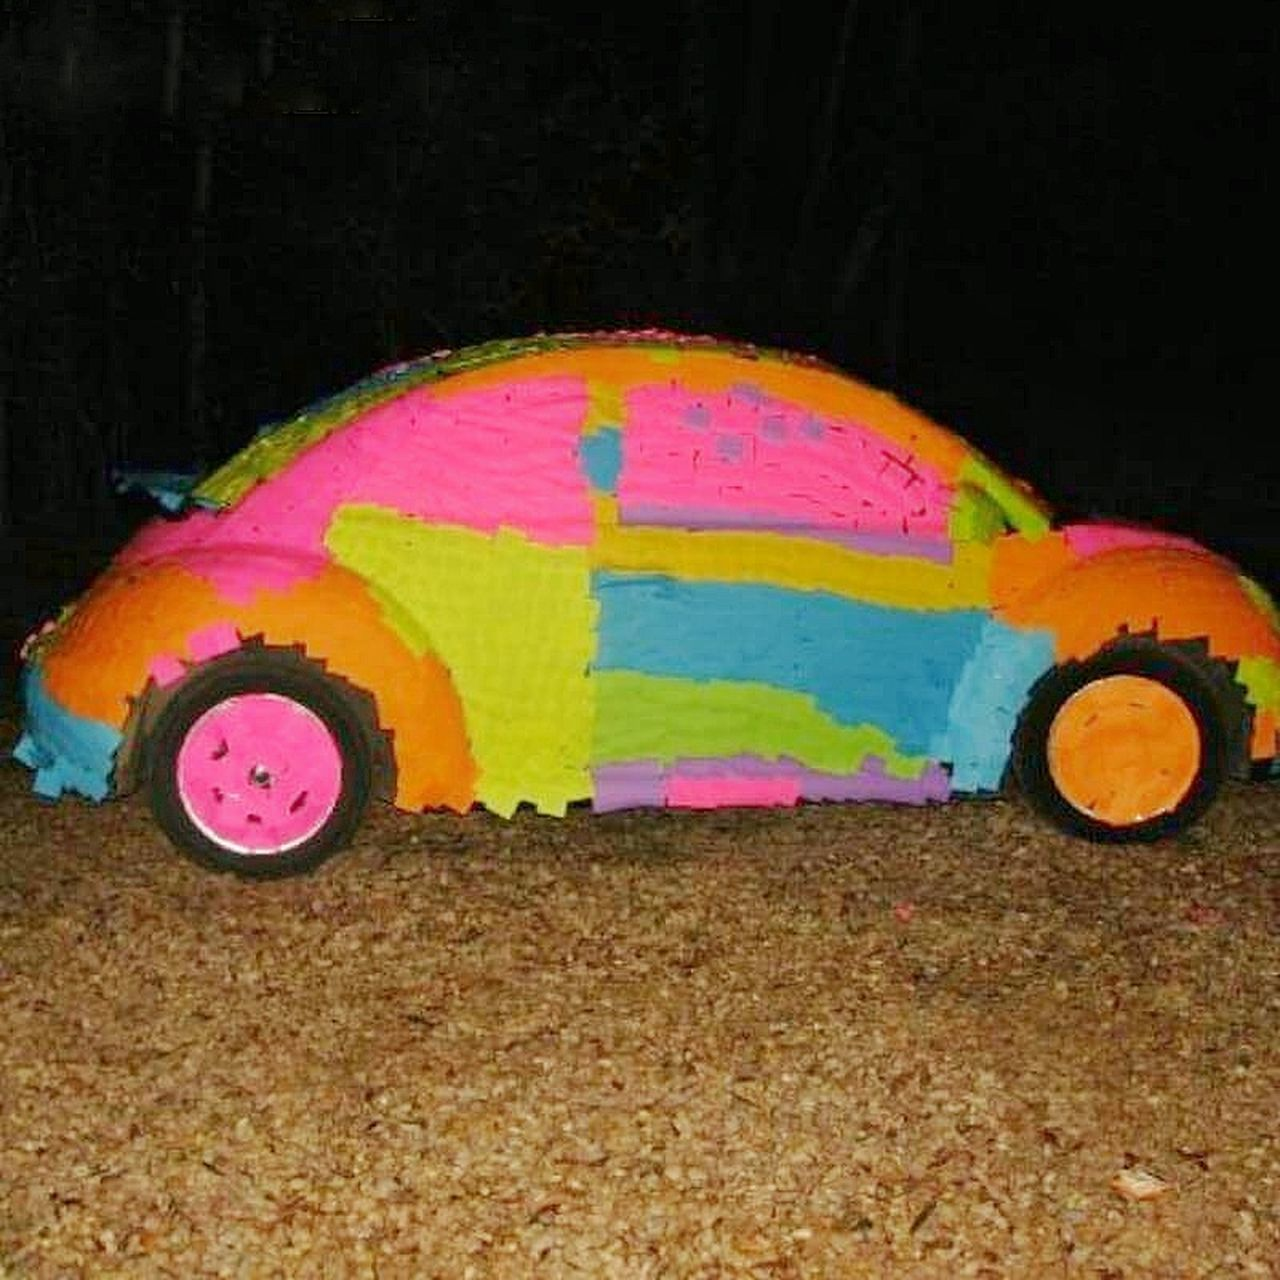 Multi Colored Pink Color No People Outdoors Close-up Day Car Bright Colors Neon Neon Color Neon Effect Glowing Glowing In The Dark Doodlebug  Volkswagen Volkswagen Beetle Funny Colorful Cars One Of A Kind  Crazy Car Creativity Unusal Stlyes Automobile Car Porn Automotive Photography